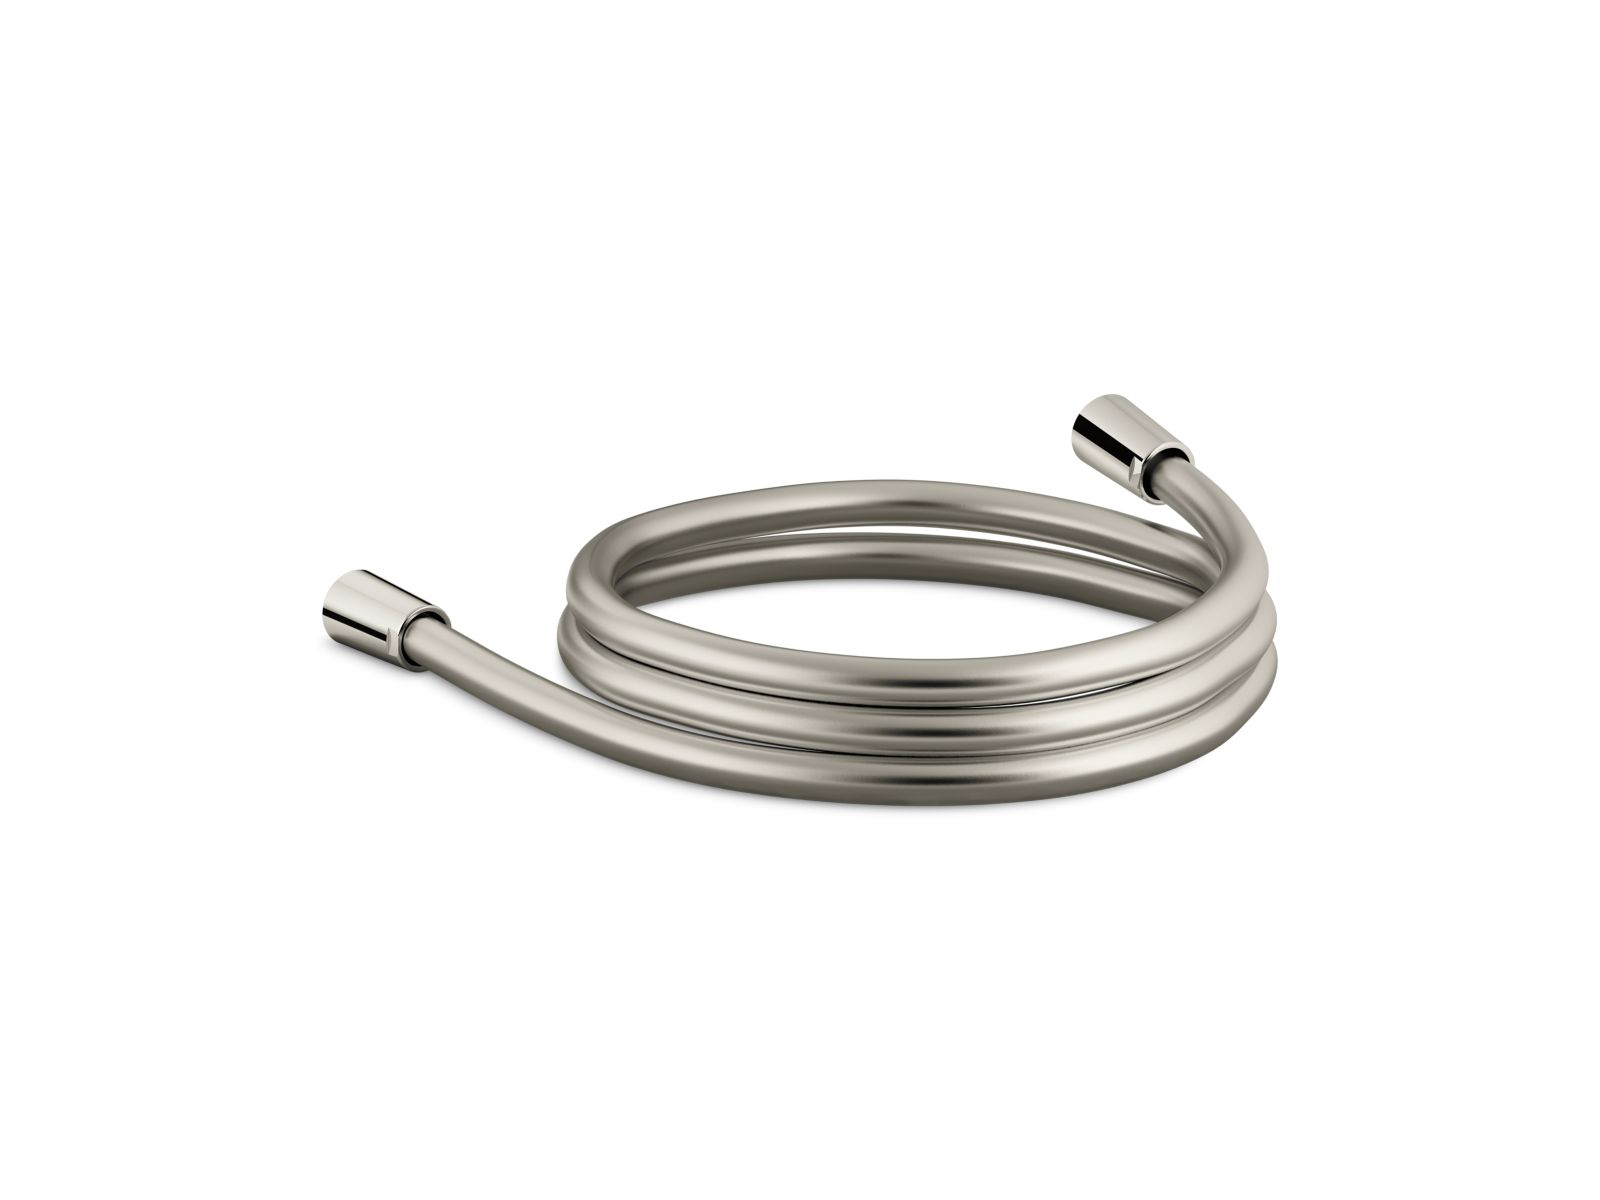 "Kohler Awaken® K-98359-SN 60"" smooth shower hose Vibrant Polished Nickel"